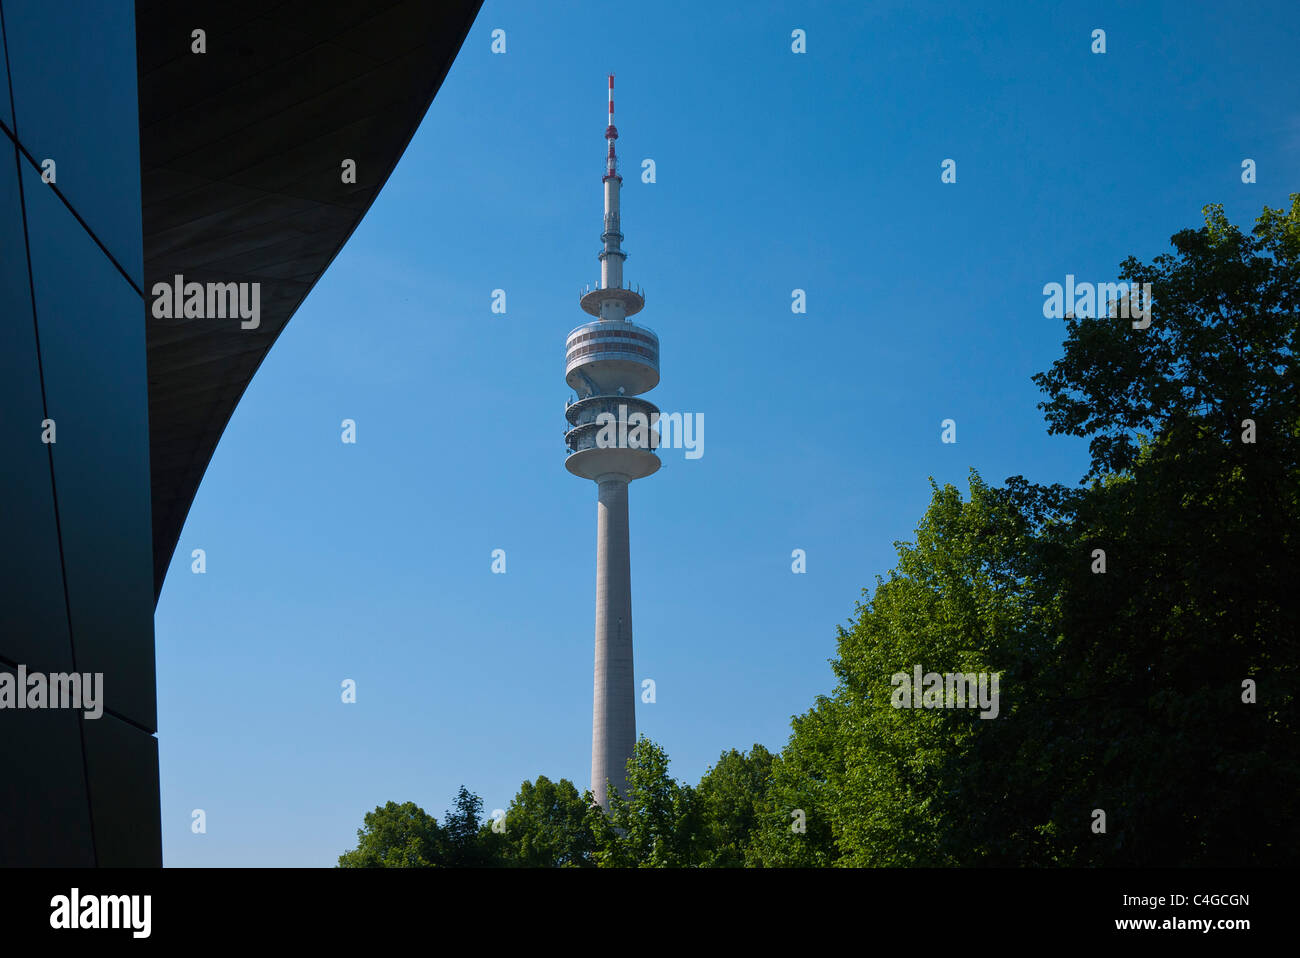 A detail of the Olympic Tower, Olympiaturm, and a portion of the BWM World (Welt) building in Munich, Germany. - Stock Image